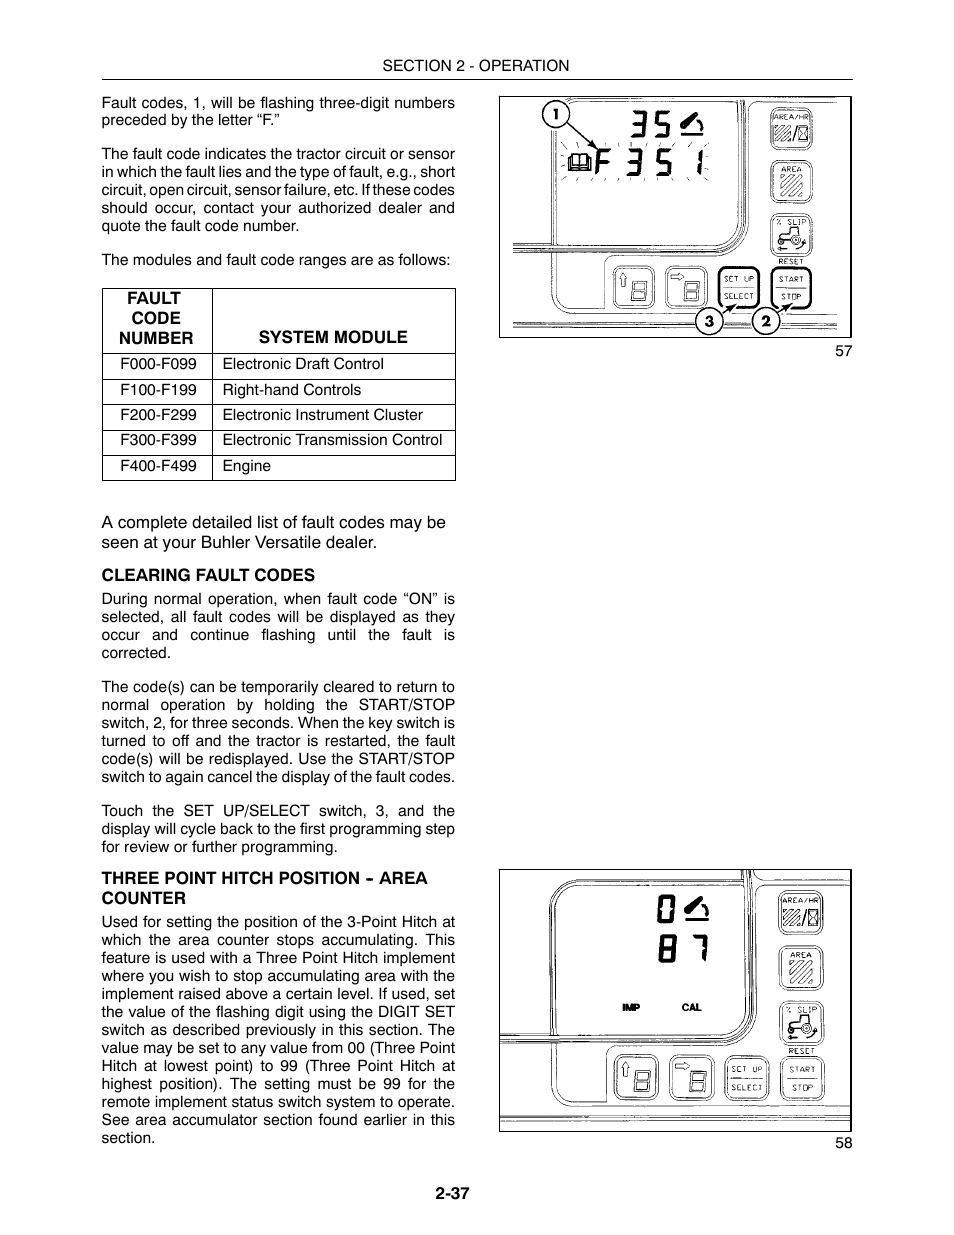 Buhler 2180 User Manual | Page 83 / 332 | Also for: 2160